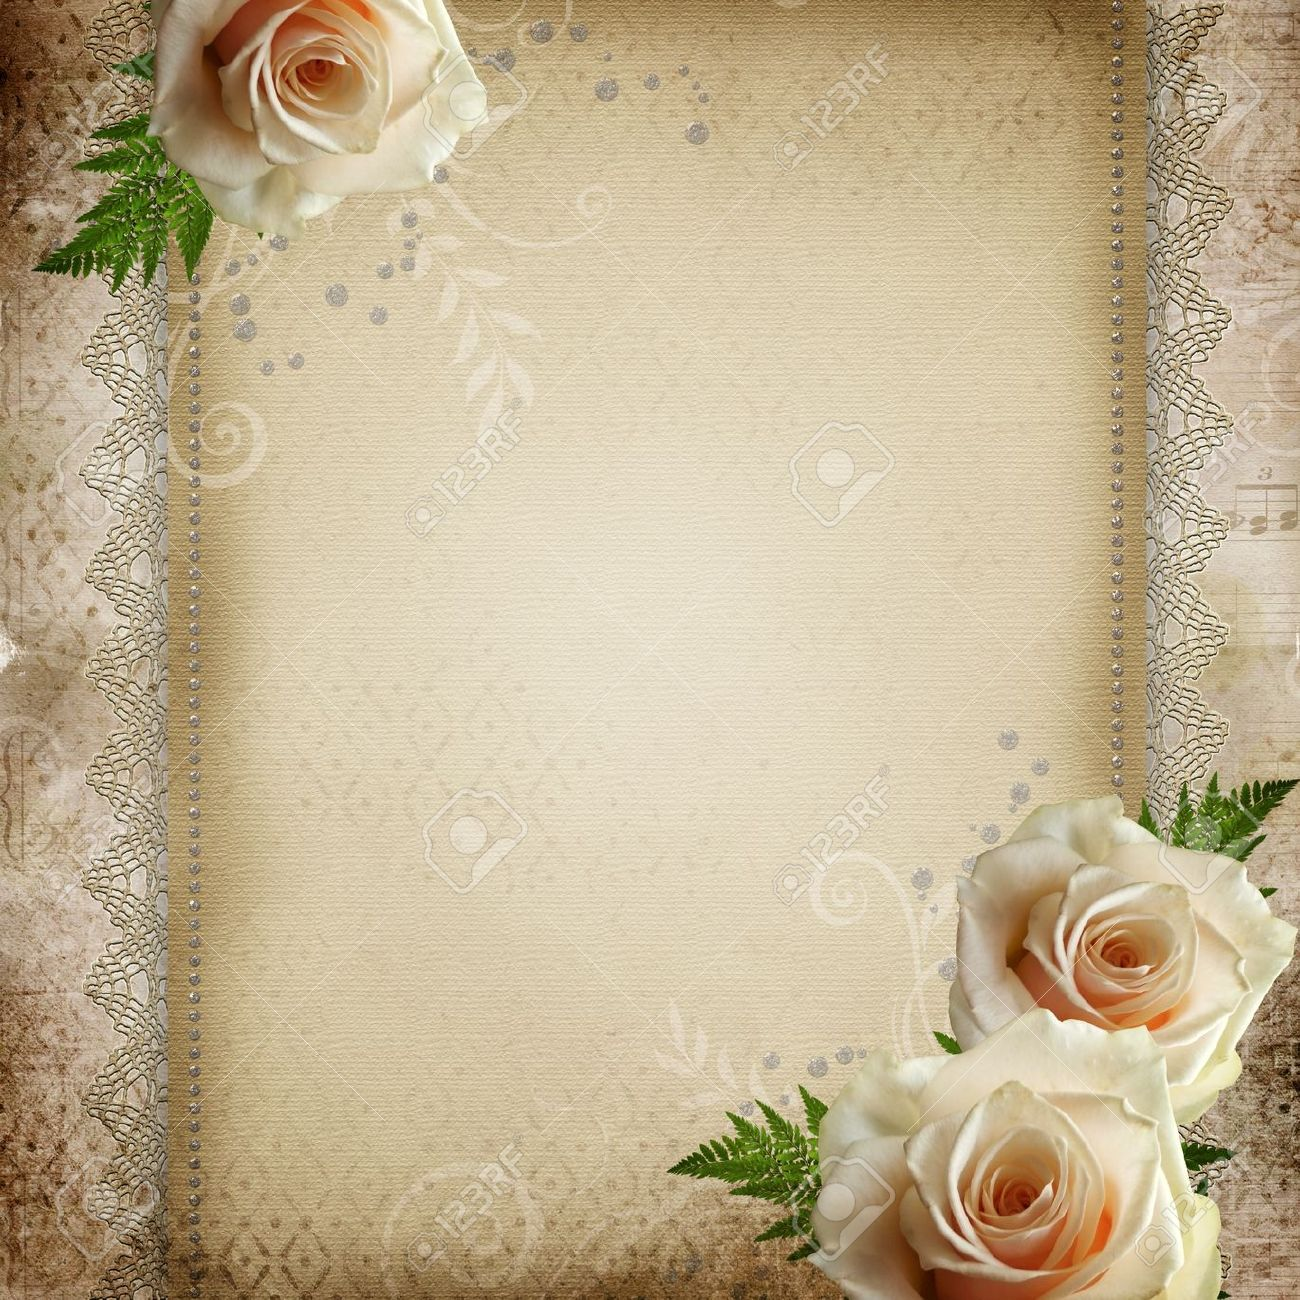 Free Download Wedding Background Images Download Wedding Background Hd 1300x1300 For Your Desktop Mobile Tablet Explore 67 Wedding Background Images Wedding Wallpaper Images Wedding Background Images Free Wedding Background Images